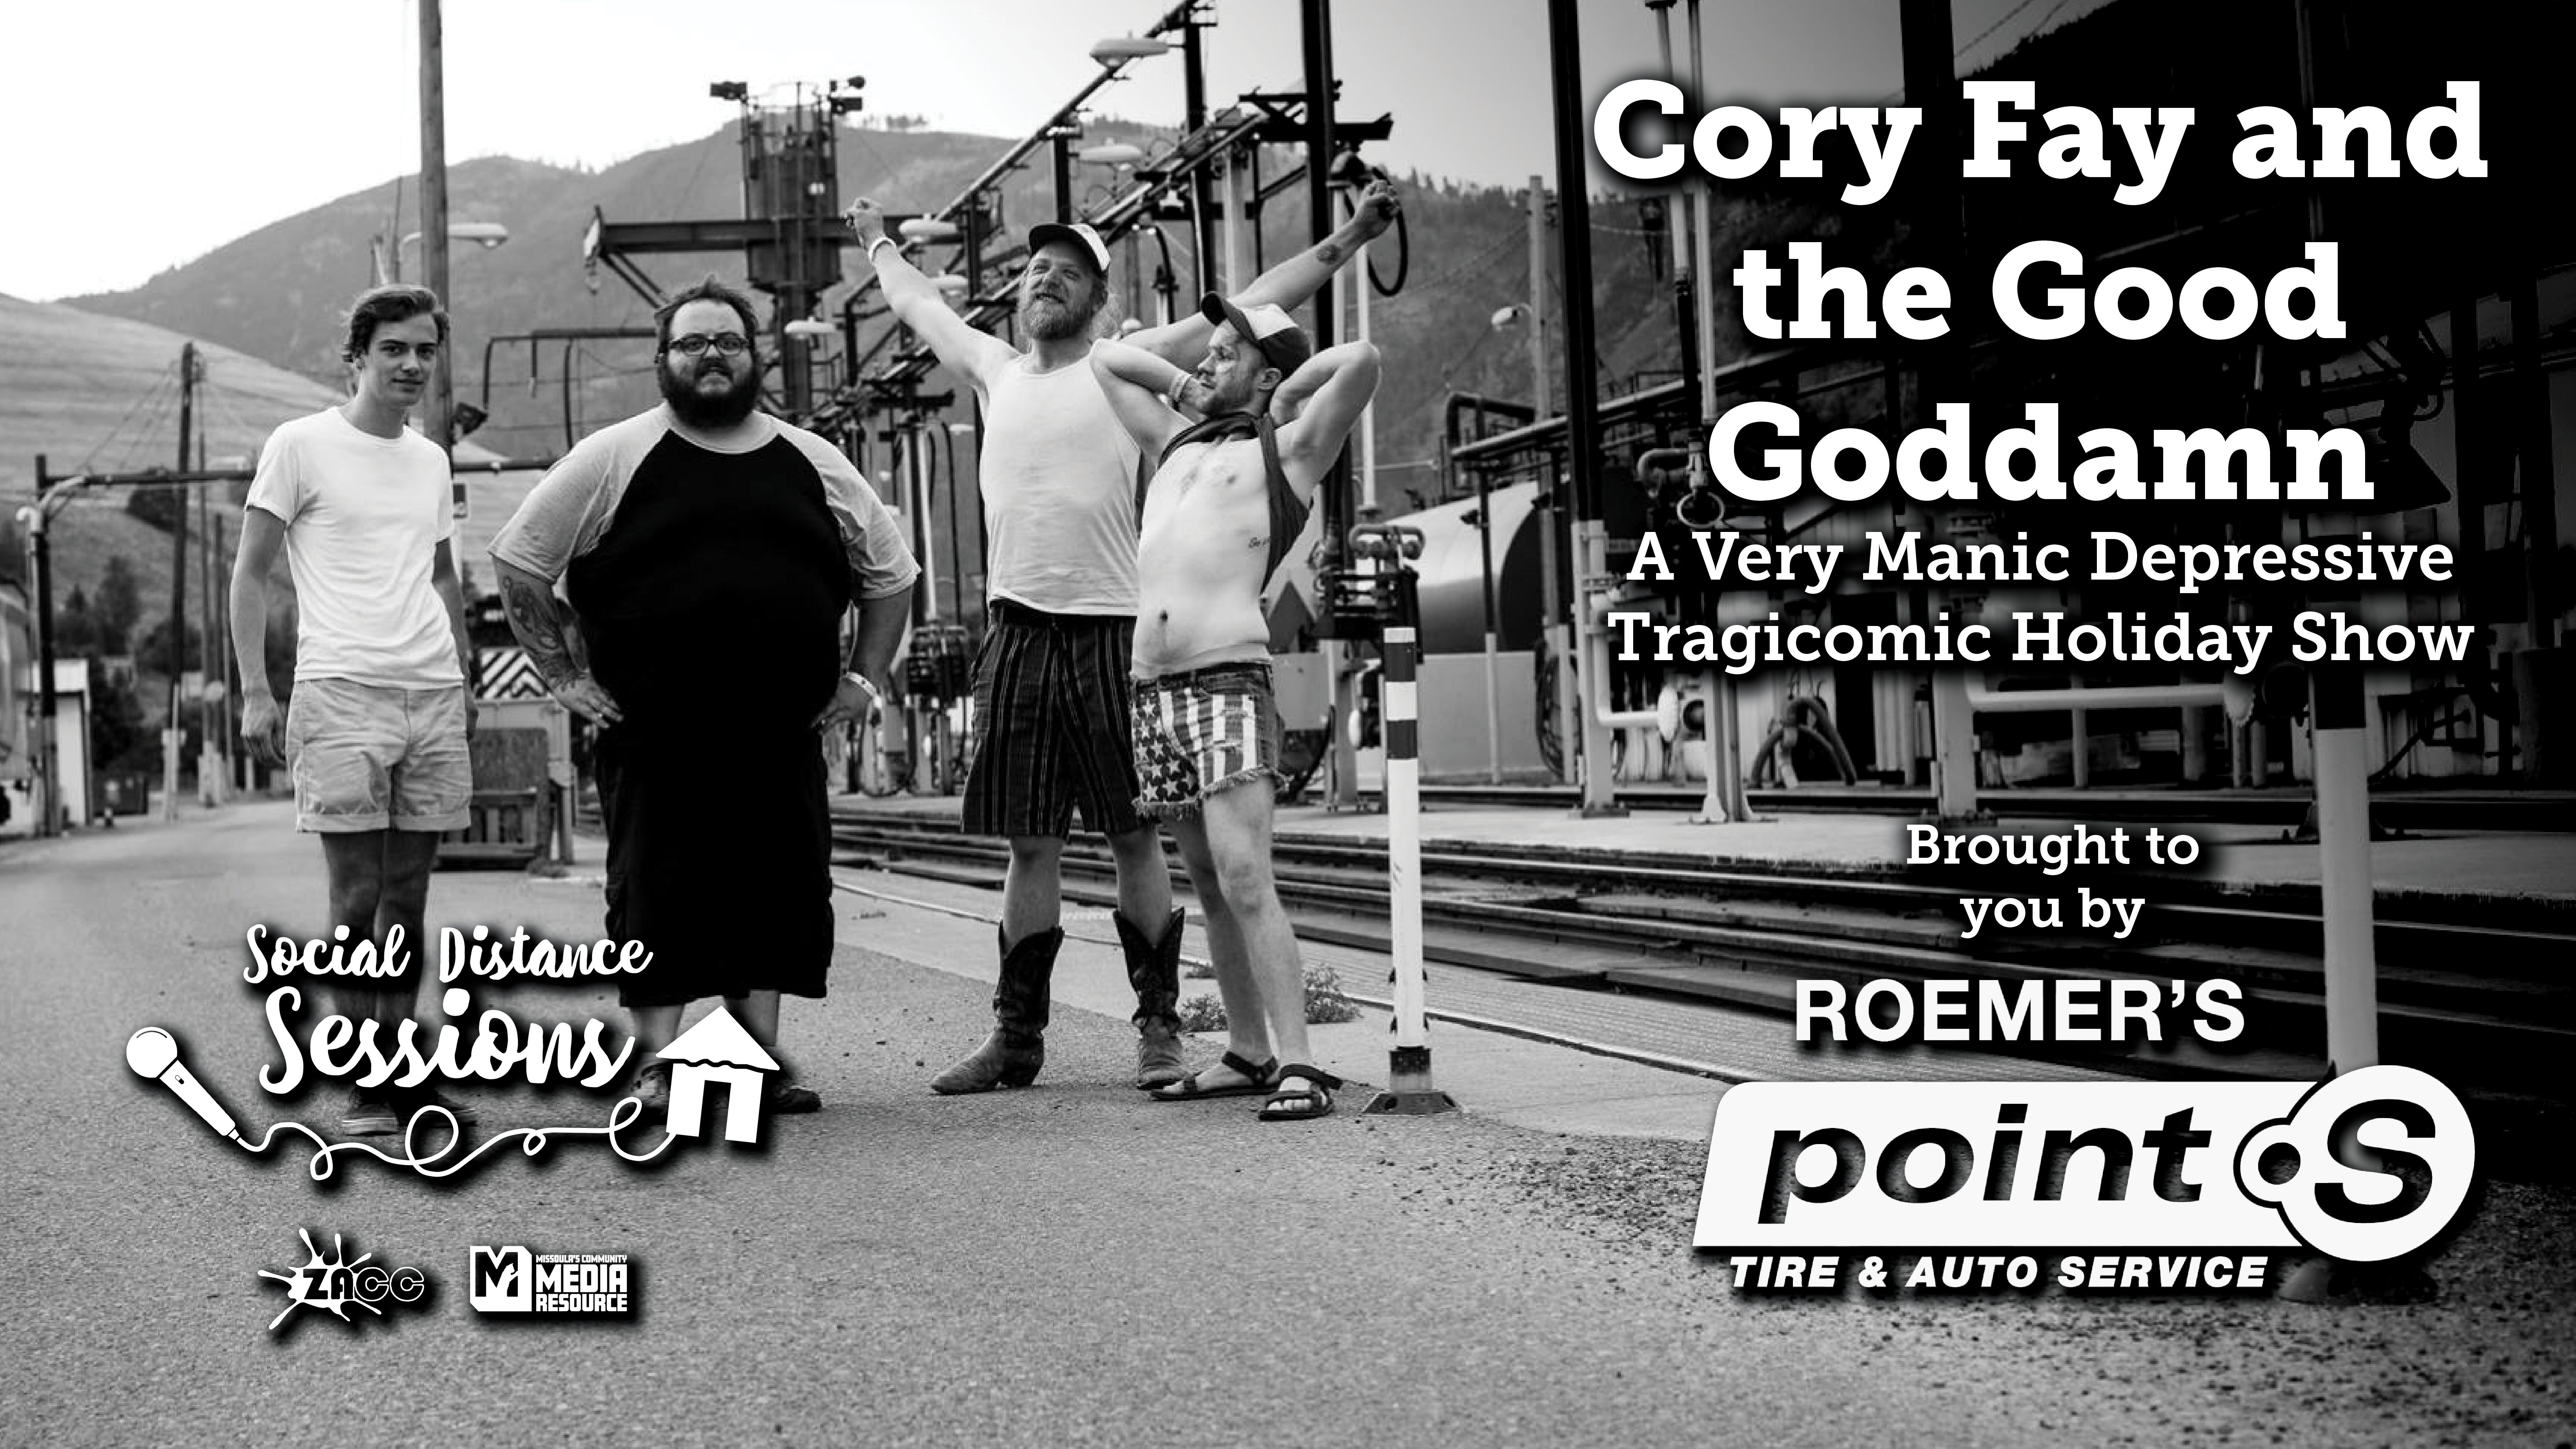 Social Distance Sessions: Cory Fay and the Good Goddamn